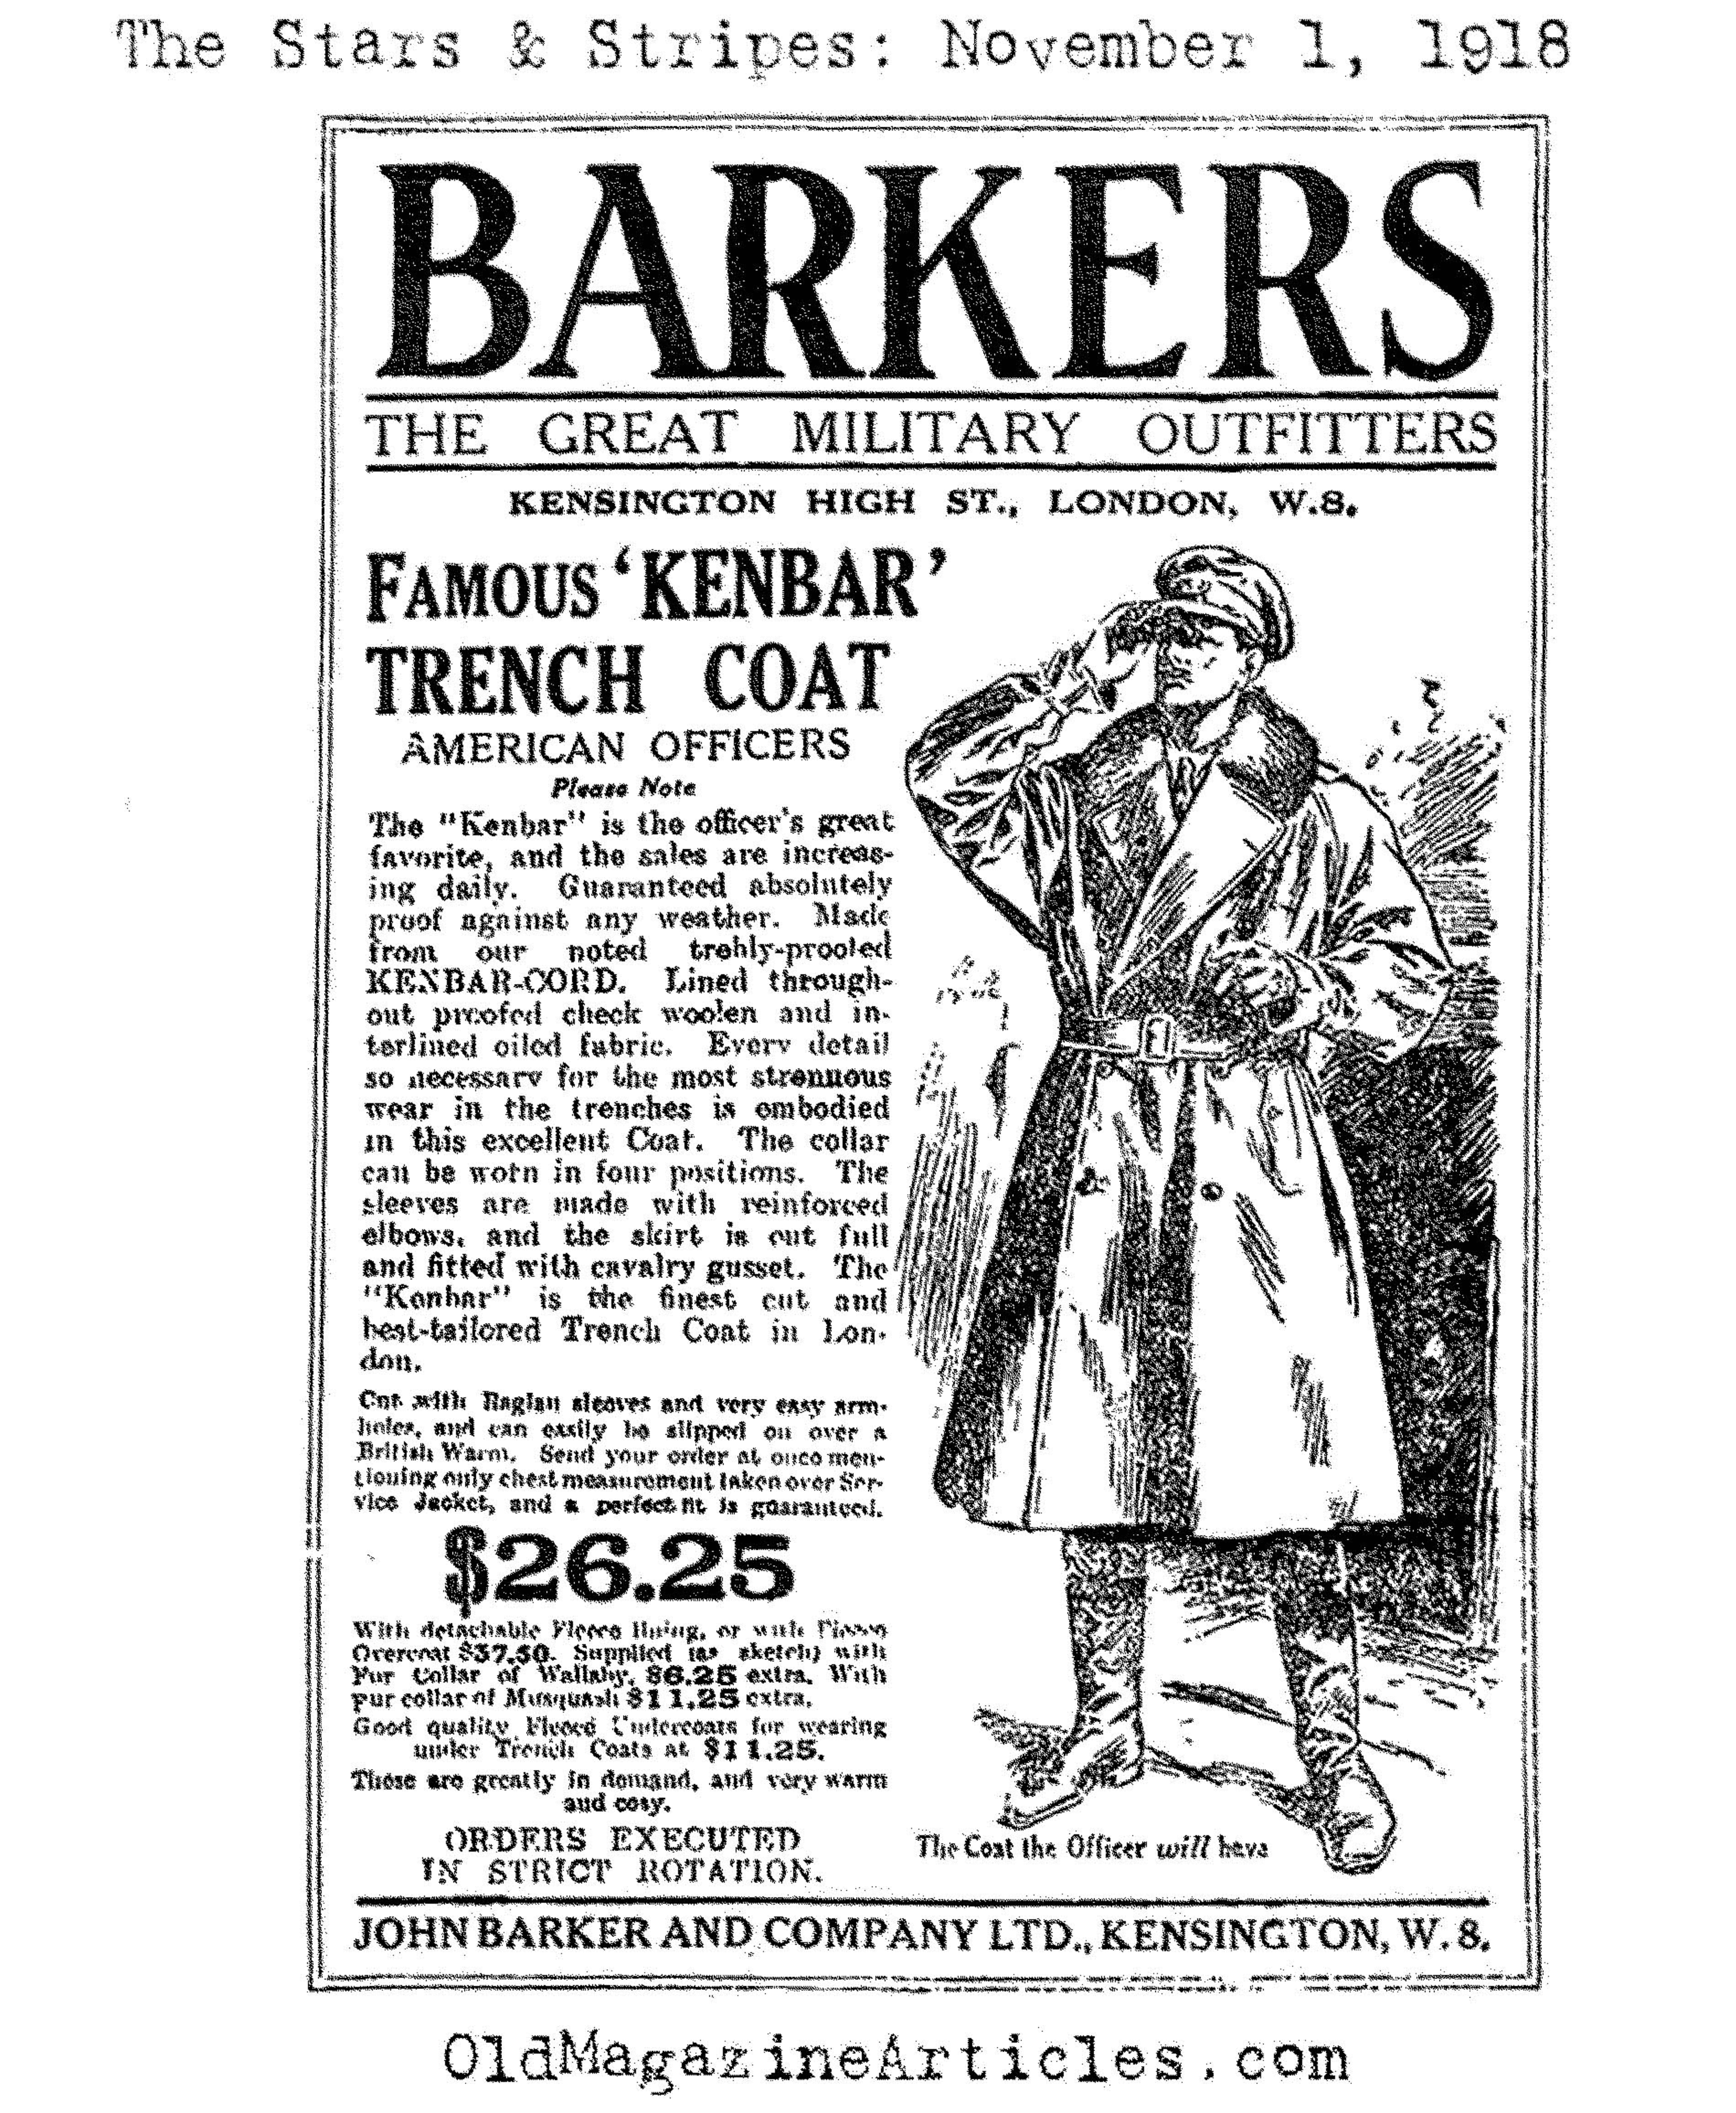 barkers of kensington